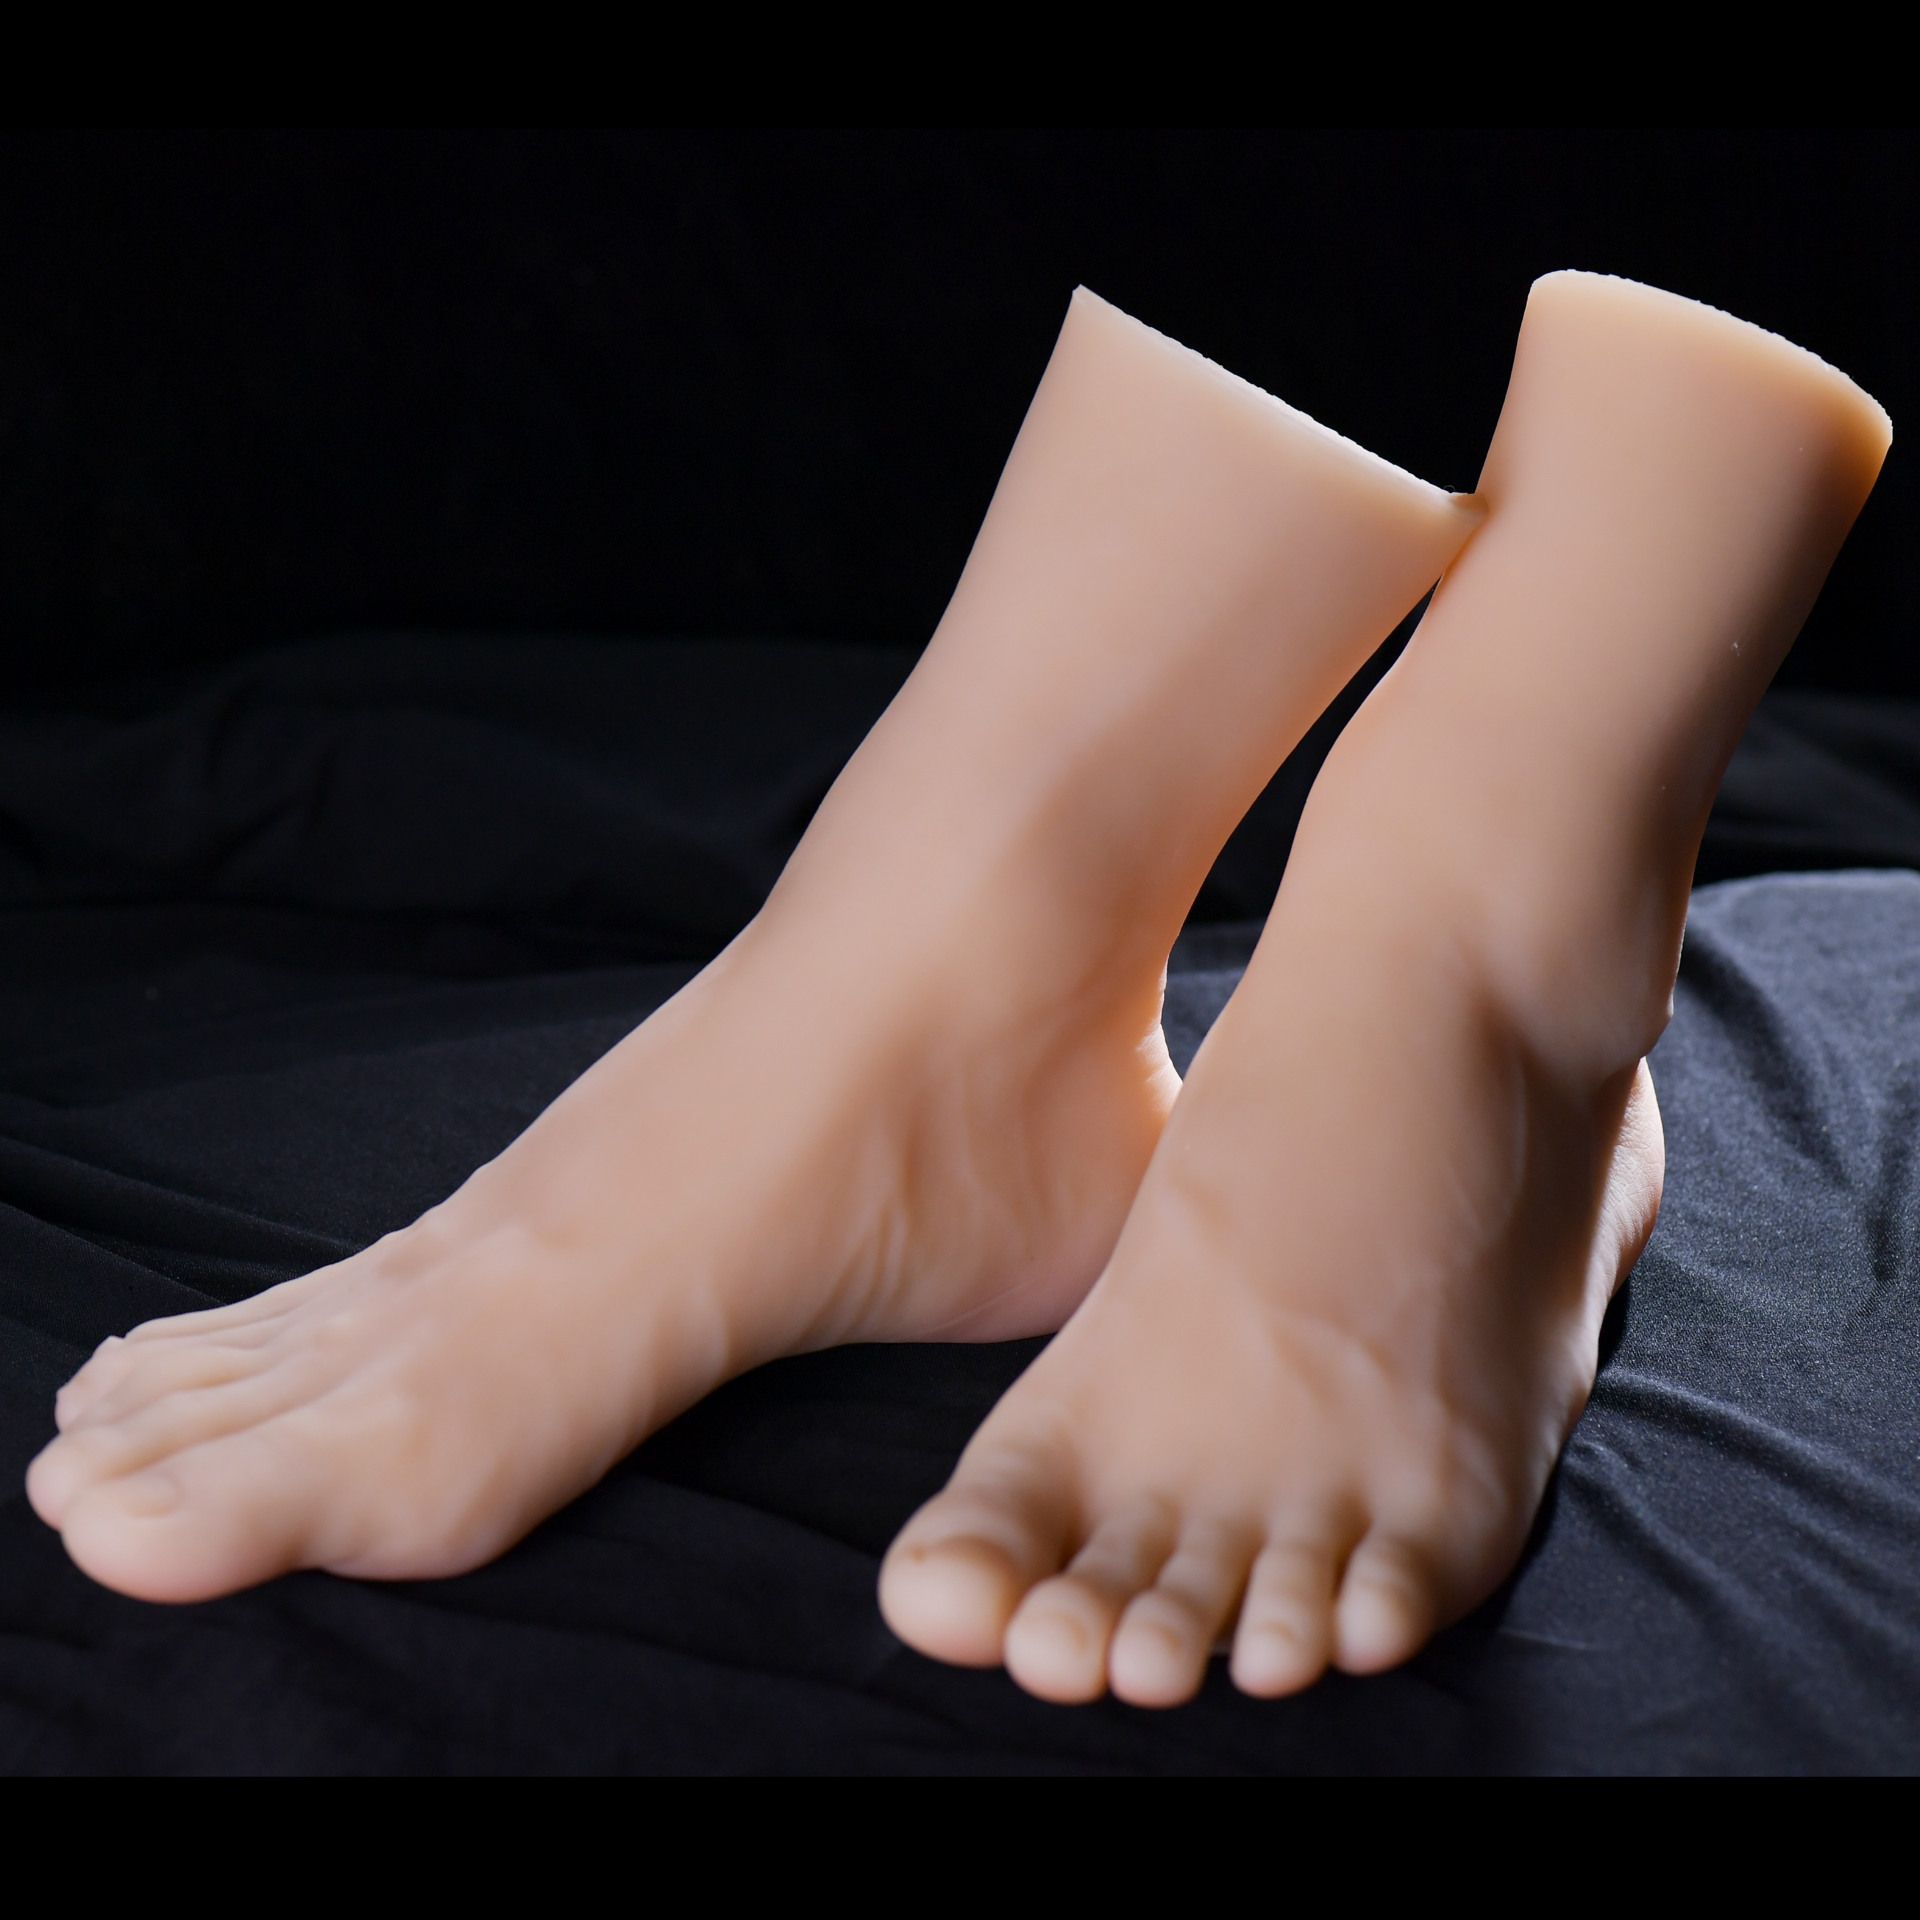 KnowU 1pcs Right or Left Male foot Model 3D Flexible 1:1 Adult Mannequin Fake foot Skin Texture Display Model